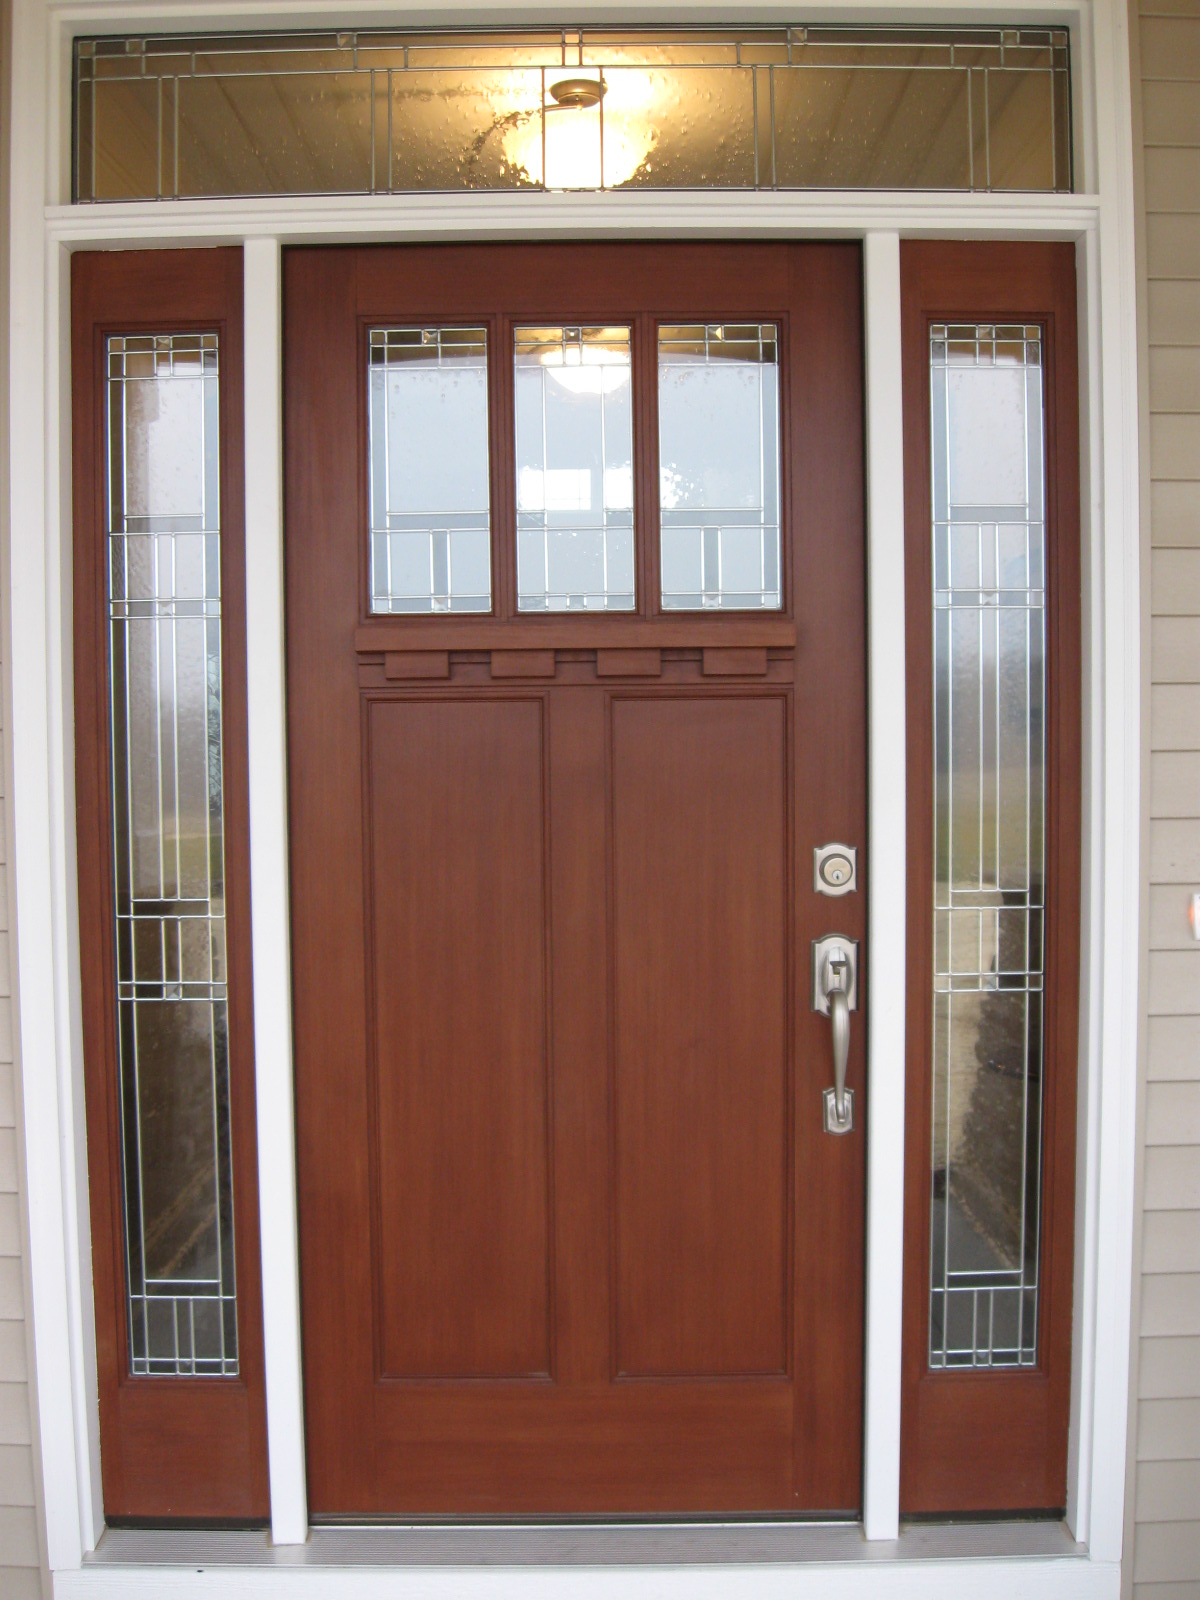 Prime How To Install A Prehung Door Properly In Your New Home Armchair Largest Home Design Picture Inspirations Pitcheantrous